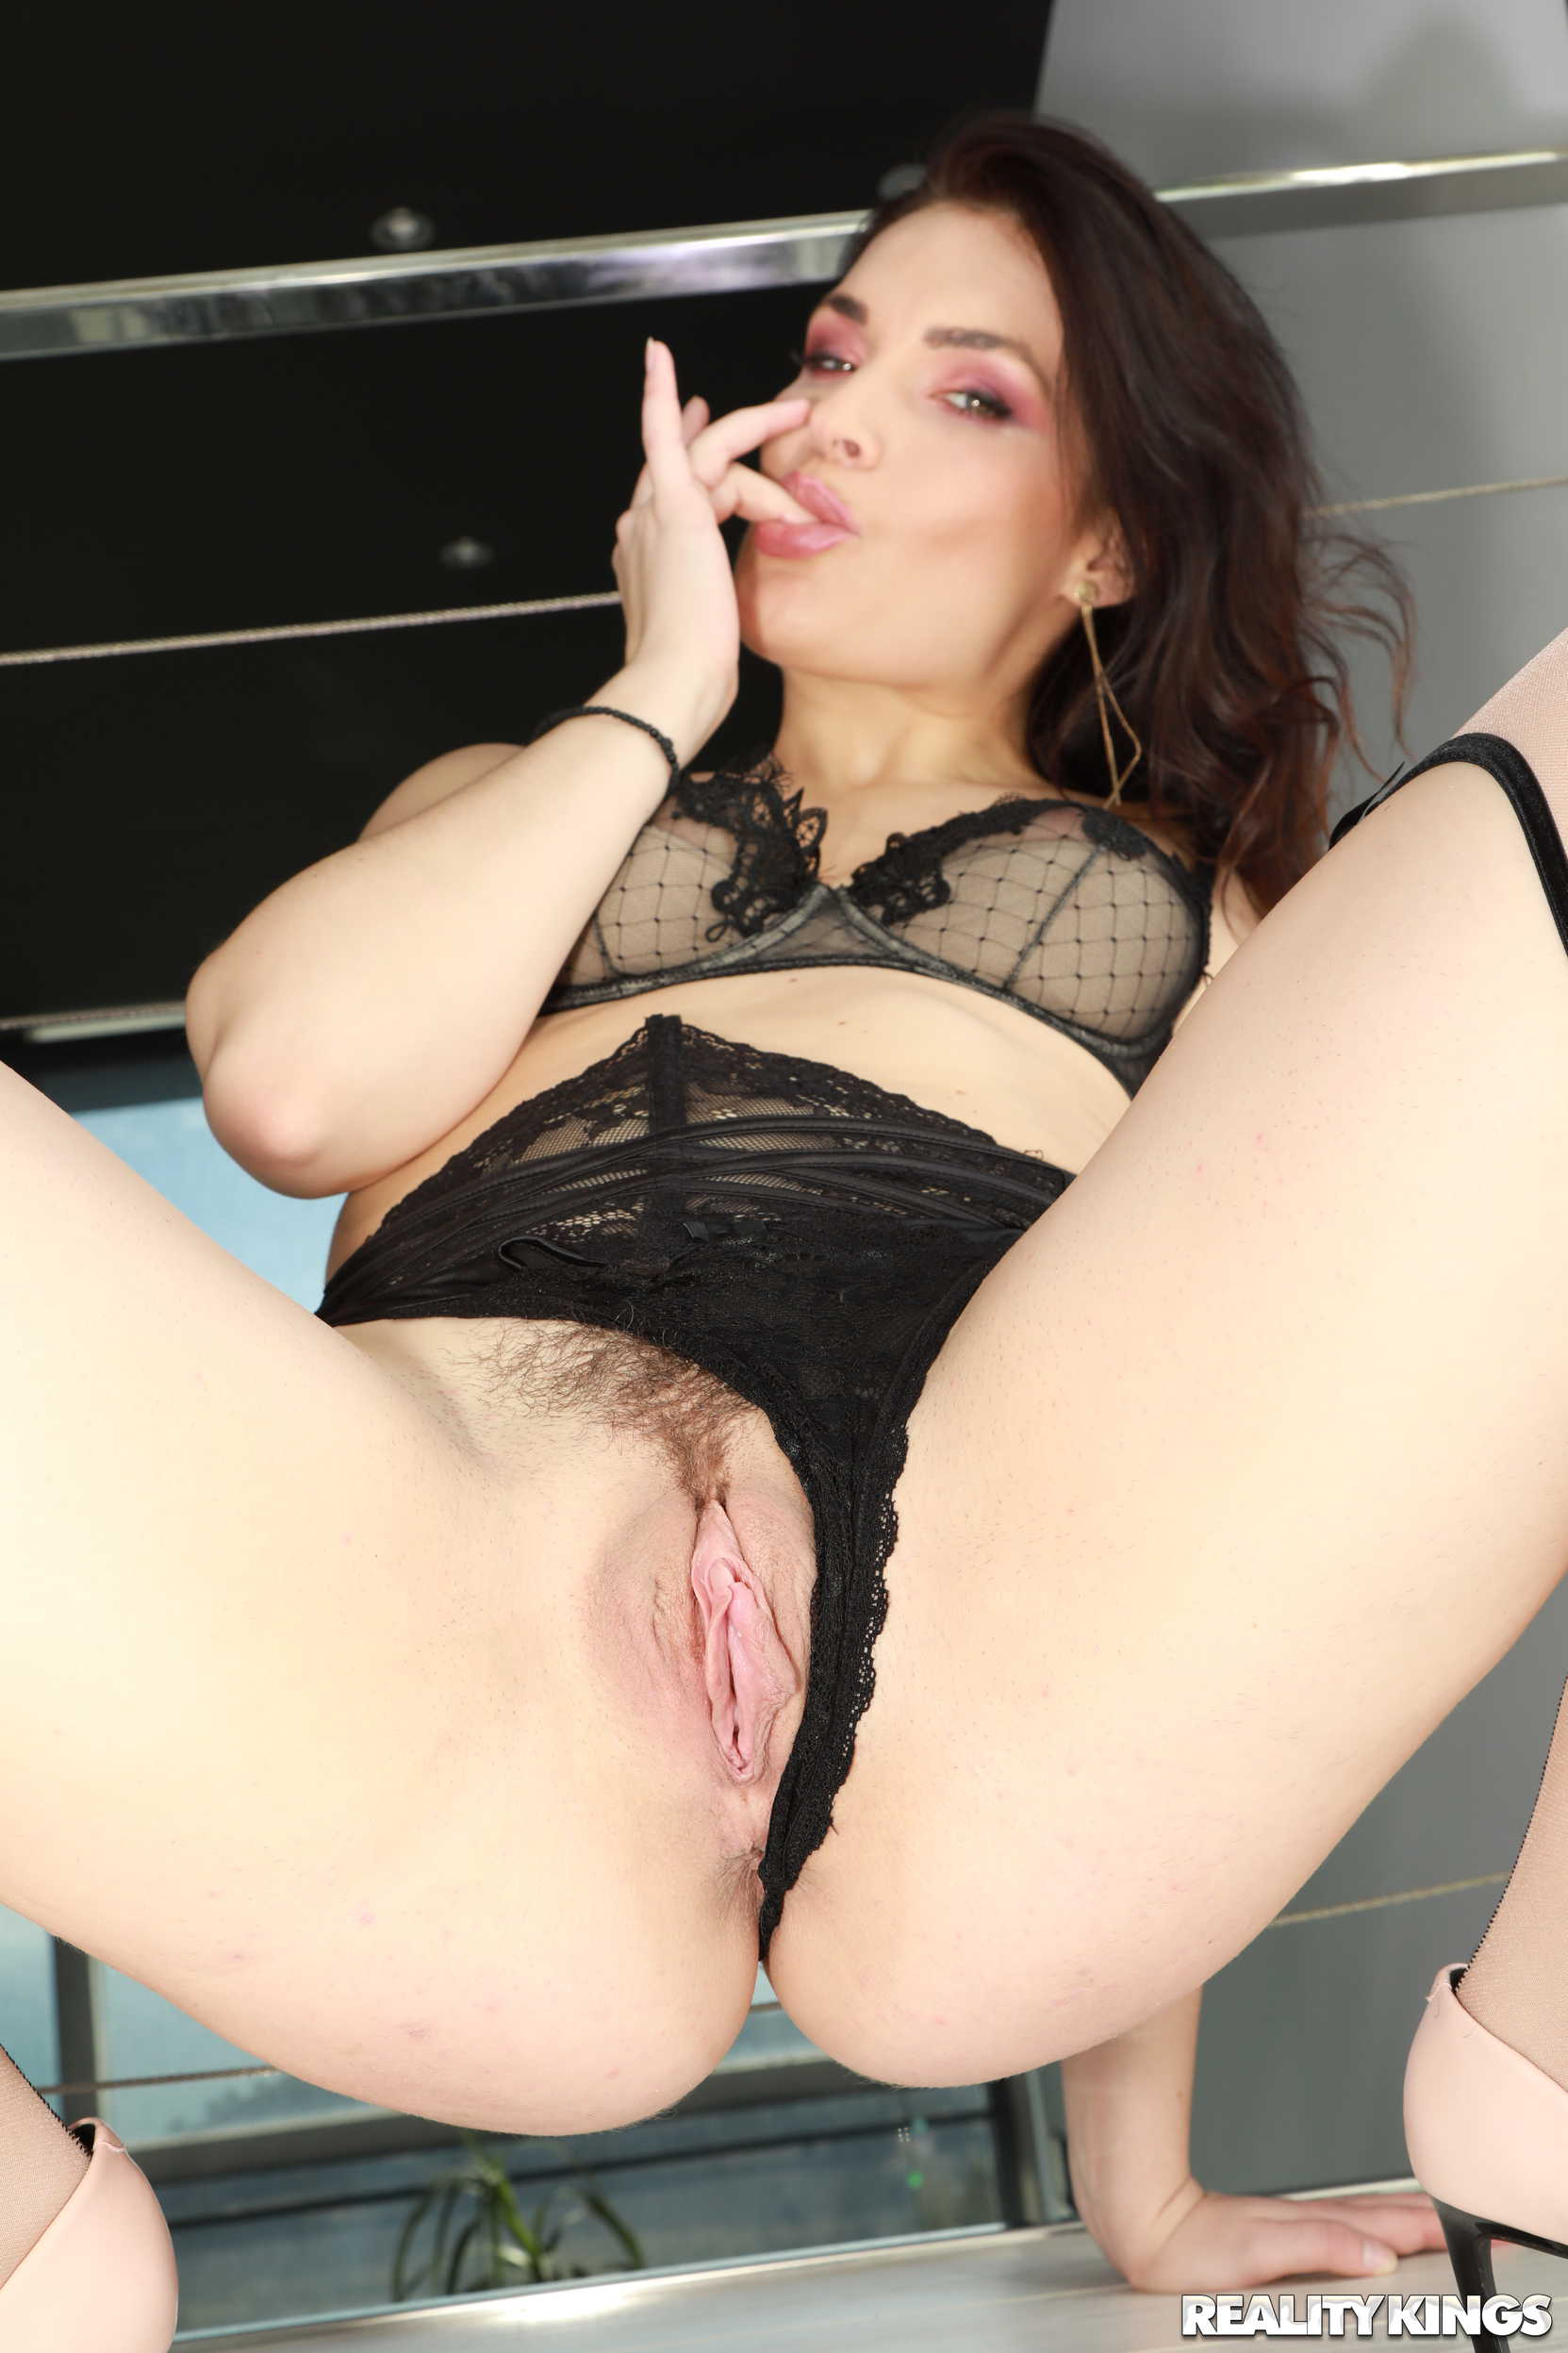 Reality Kings 'From Business To Pleasure' starring Hannah Vivienne (Photo 105)